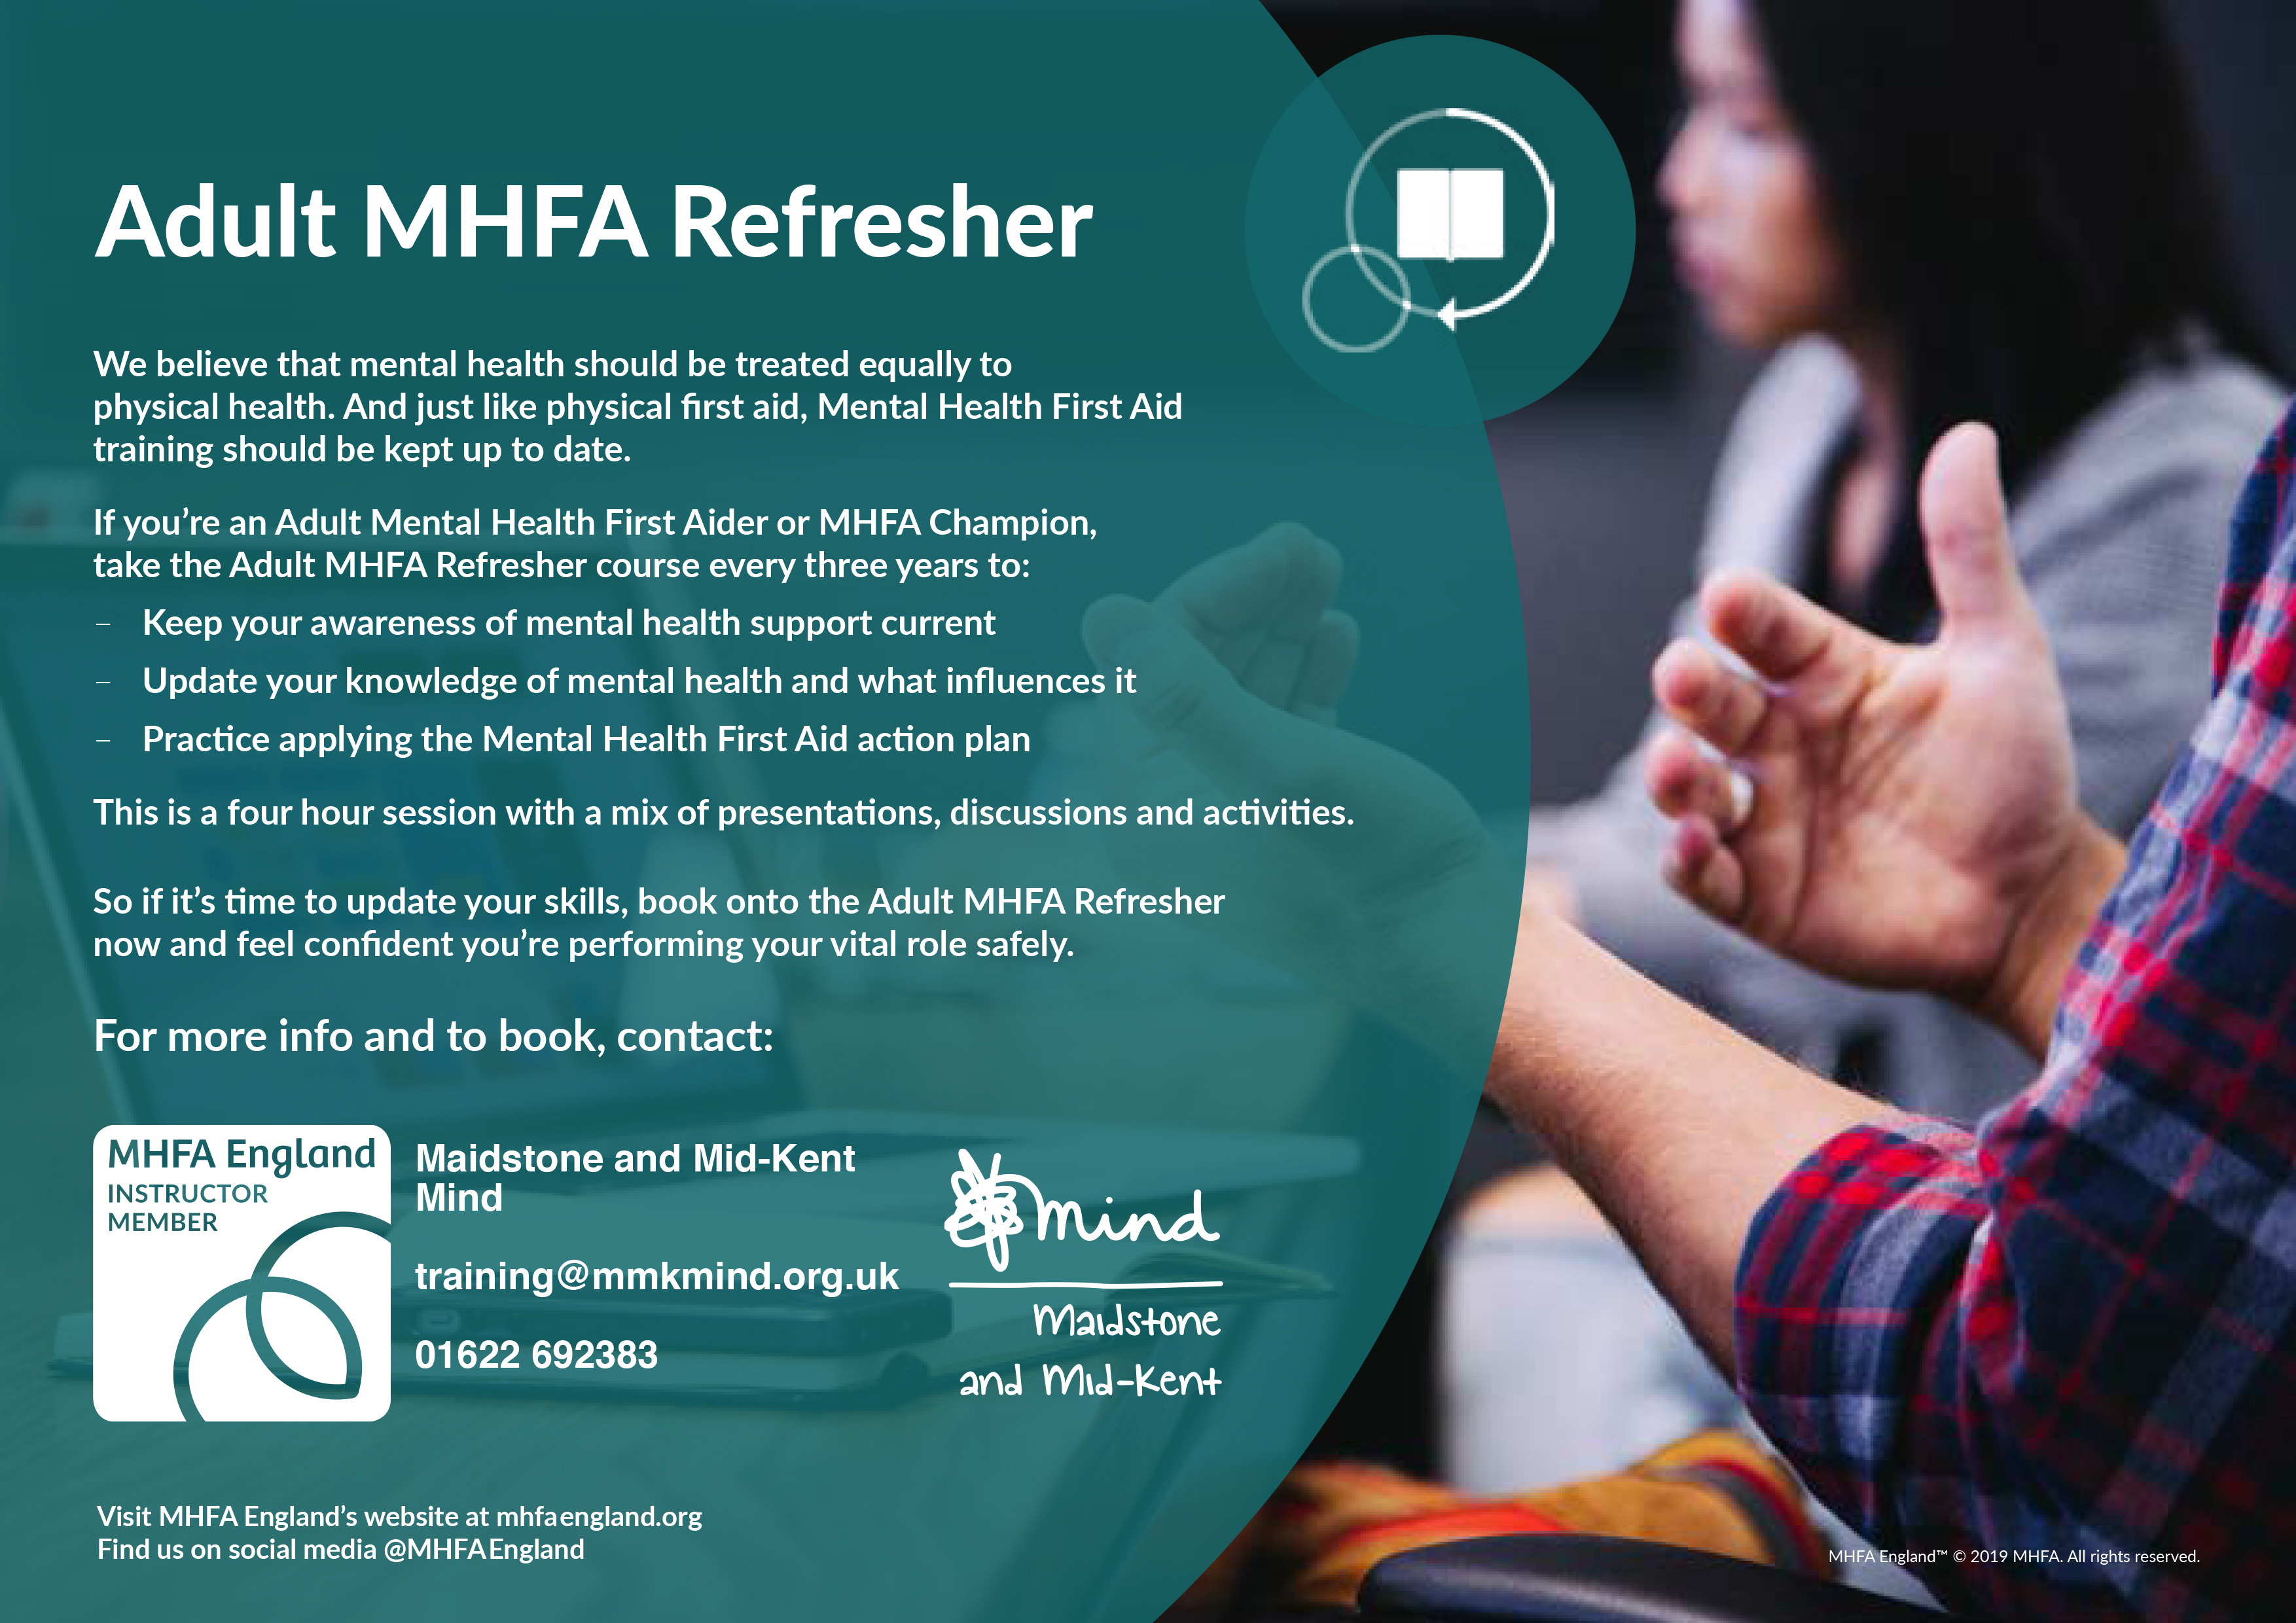 MHFA Refresher - Adult MHFA Refresher. We believe that mental health should be treated equally to physical health. And just like physical first aid, Mental Health First Aid training should be kept up to date. If you're an Adult Mental Health First Aider or MHFA Champion, take the Adult MHFA Refresher course every three years to: – Keep your awareness of mental health support current – Update your knowledge of mental health and what influences it – Practice applying the Mental Health First Aid action plan This is a four hour session with a mix of presentations, discussions and activities. So if it's time to update your skills, book onto the Adult MHFA Refresher now and feel confident you're performing your vital role safely. For more info and to book, contact: Maidstone and Mid-Kent Mind. training@mmkmind.org.uk. 01622 692383.